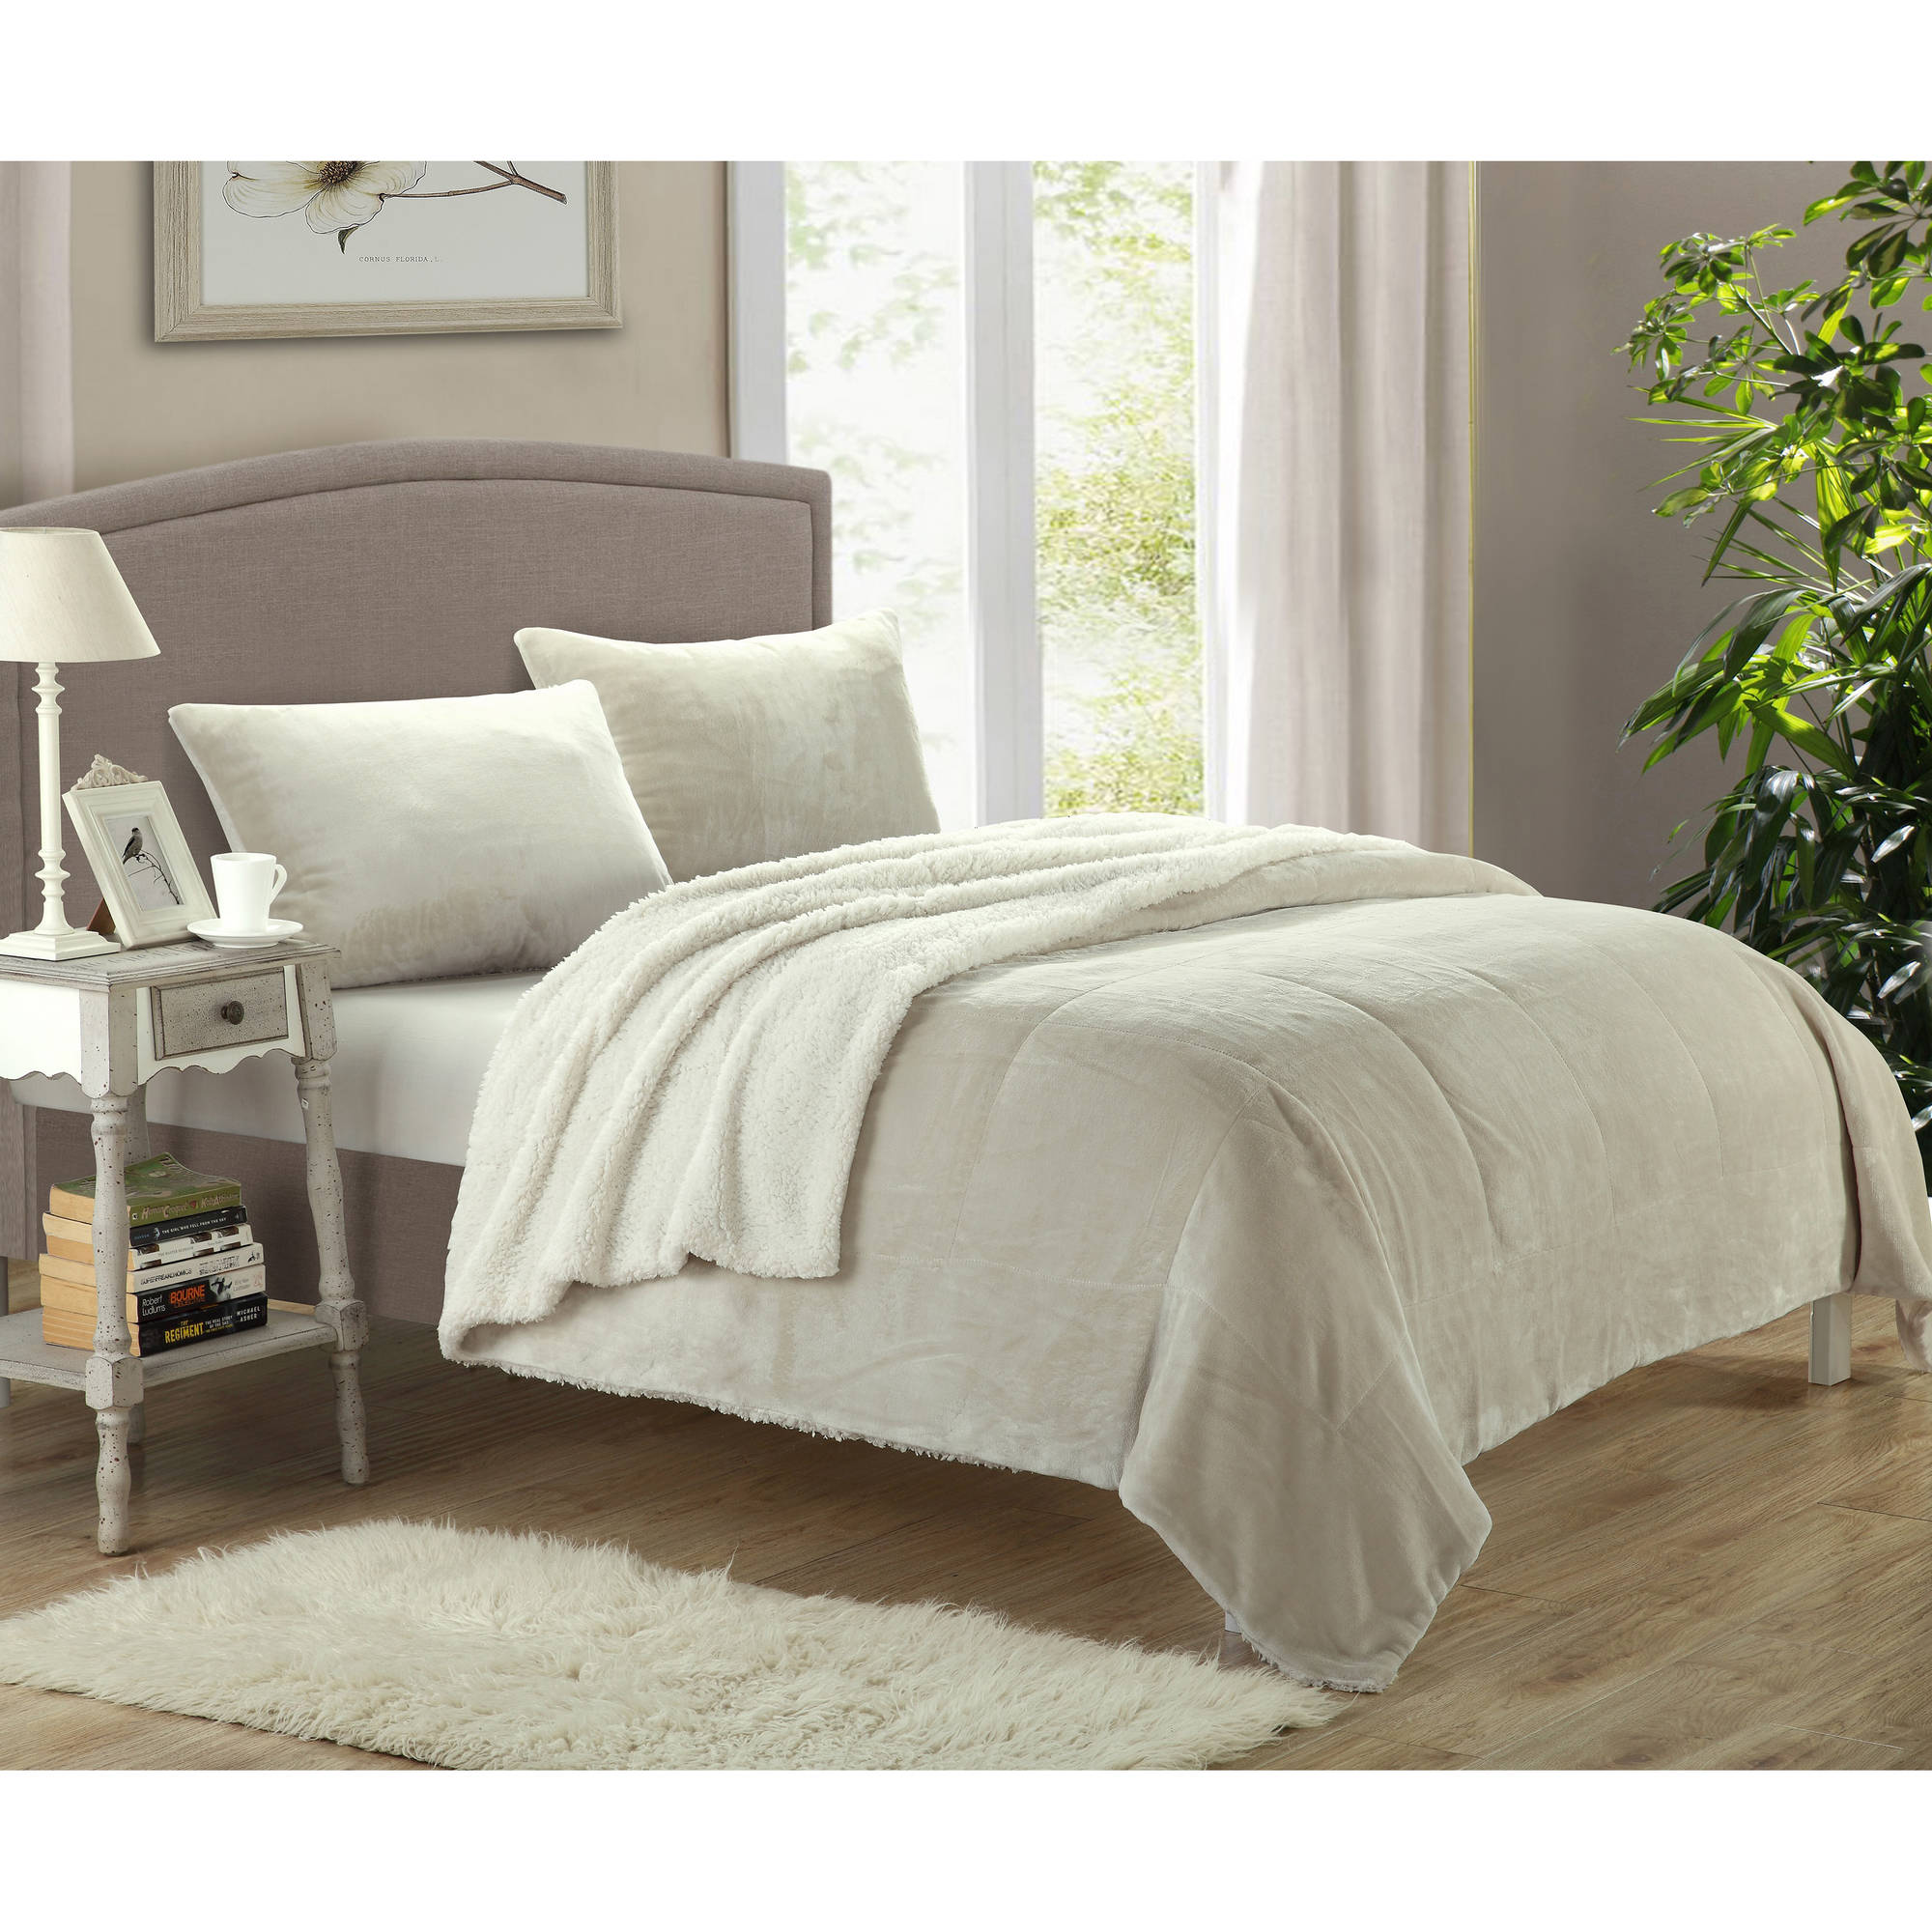 piece bedding micro suede windsor sherpa today fleece set product bath aecd free overstock comforter shipping home